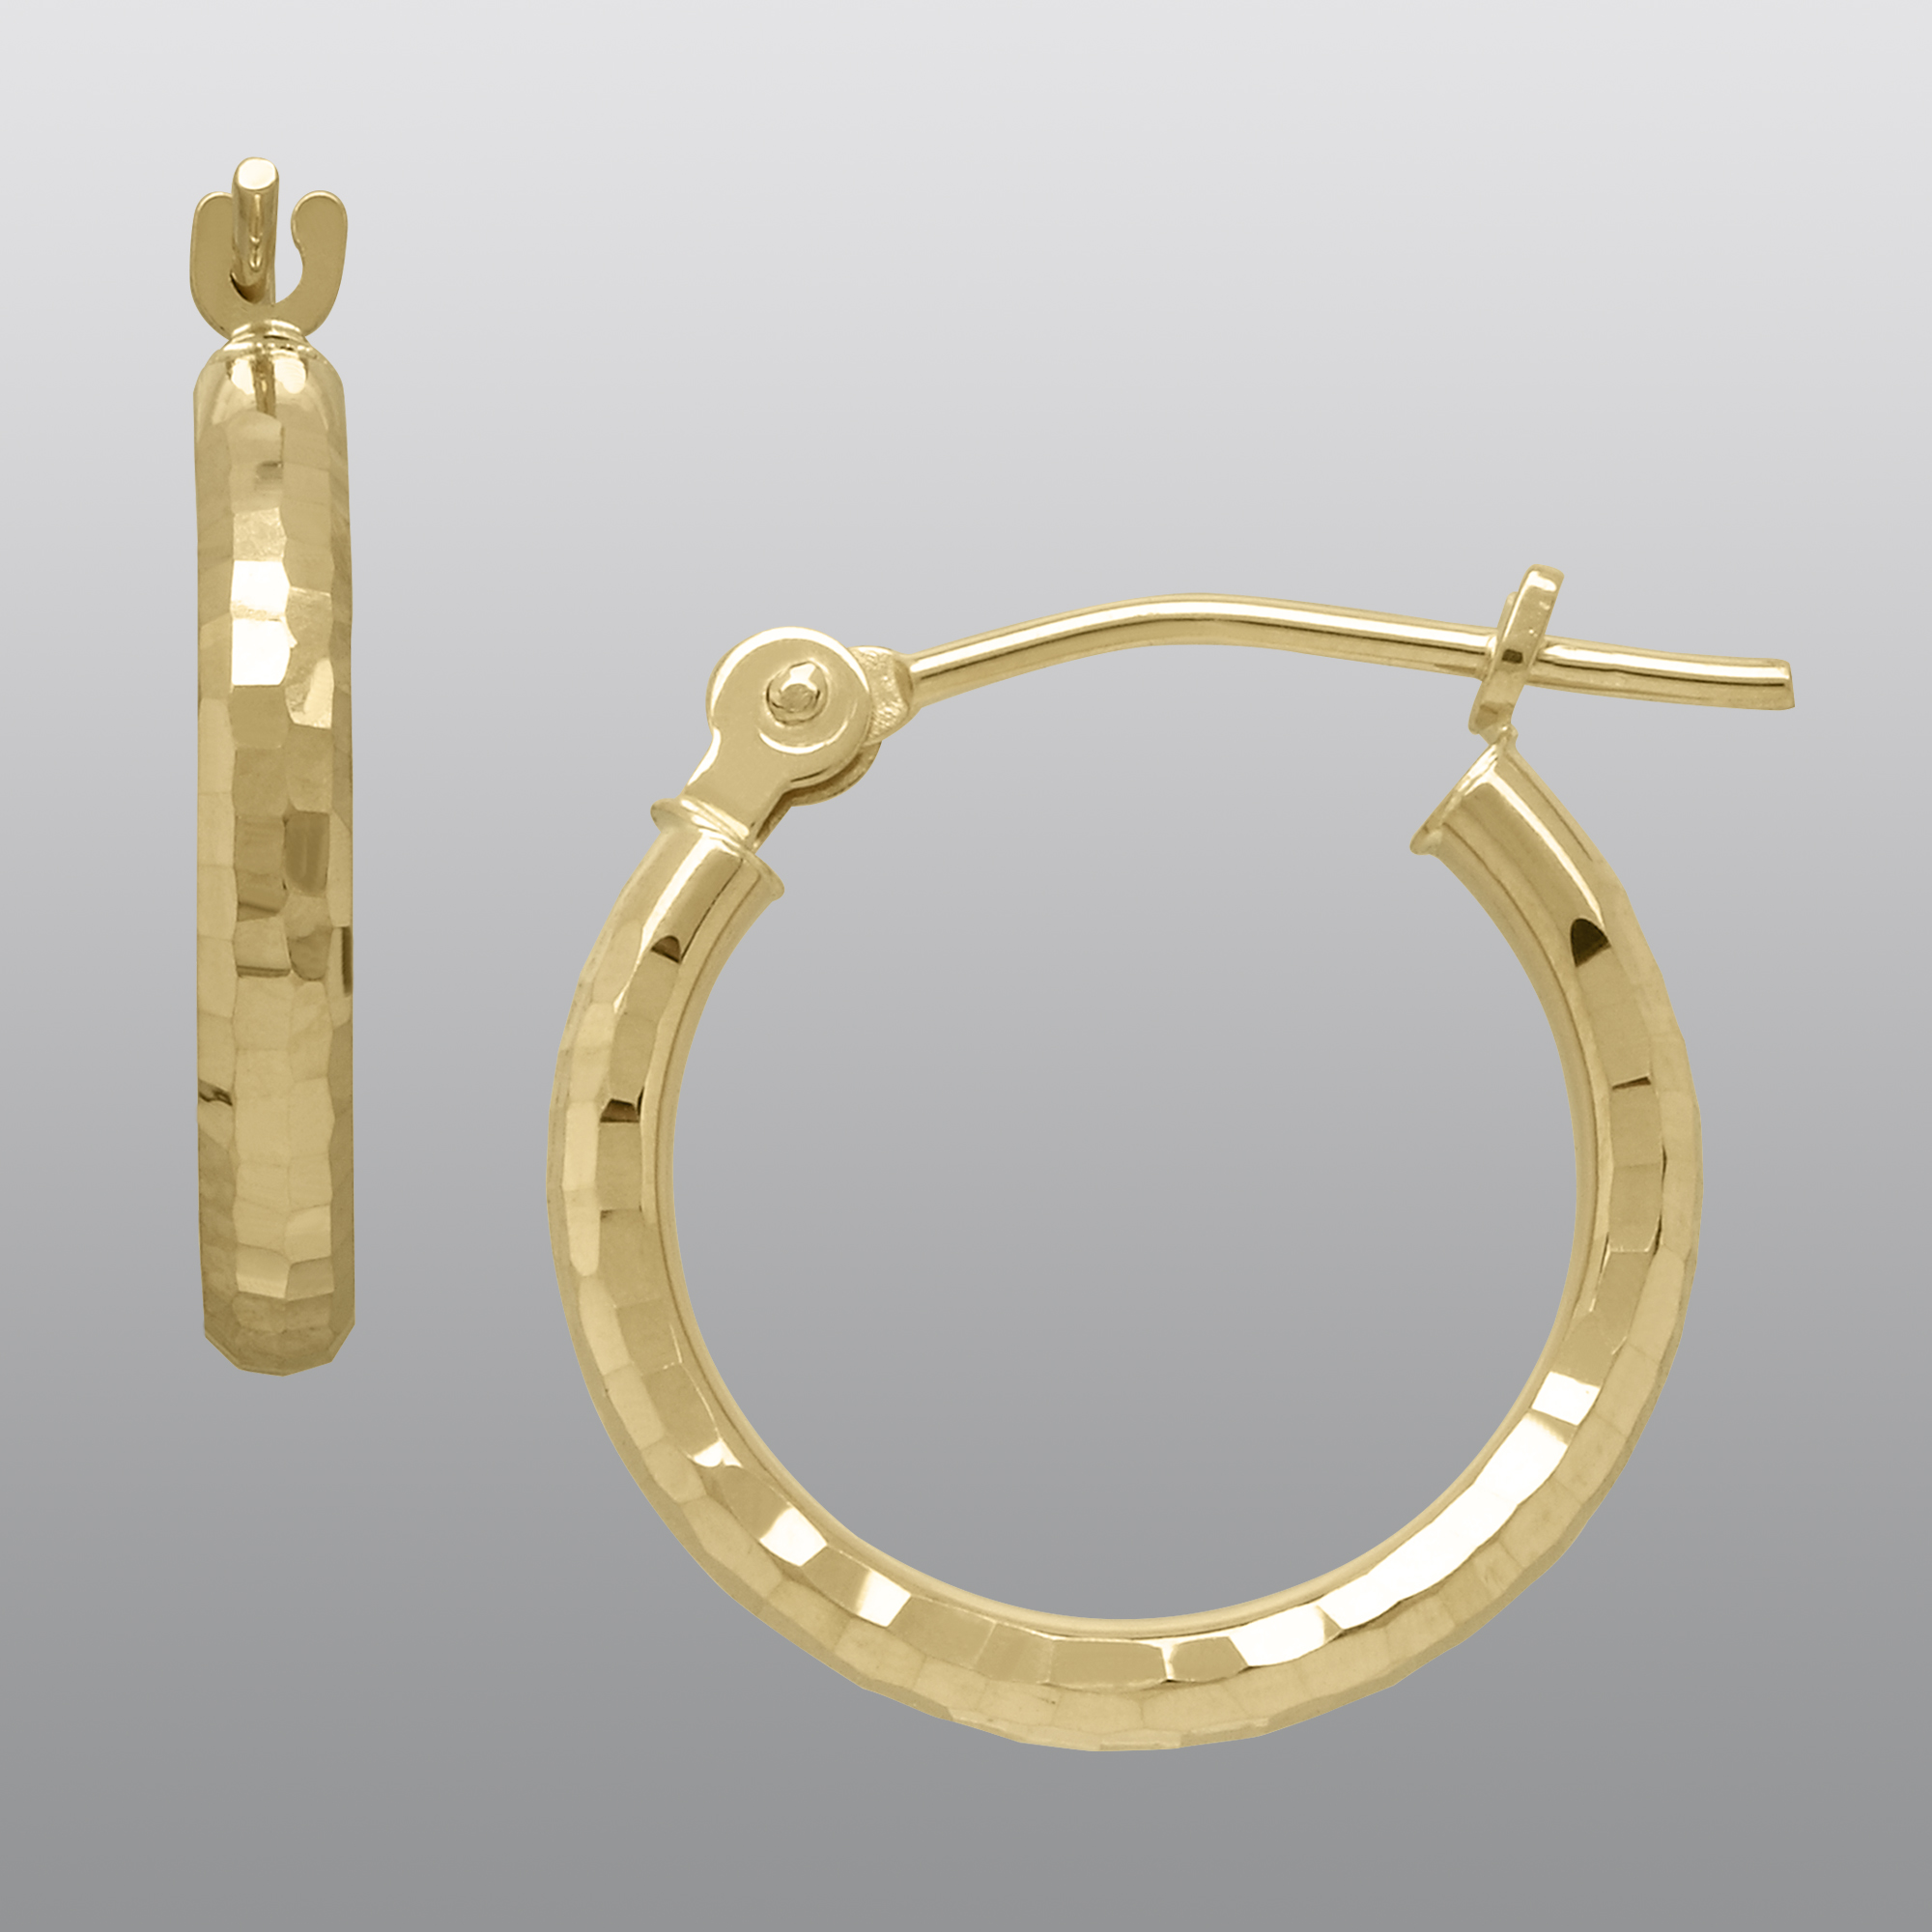 True Gold 14k Hoop Earrings